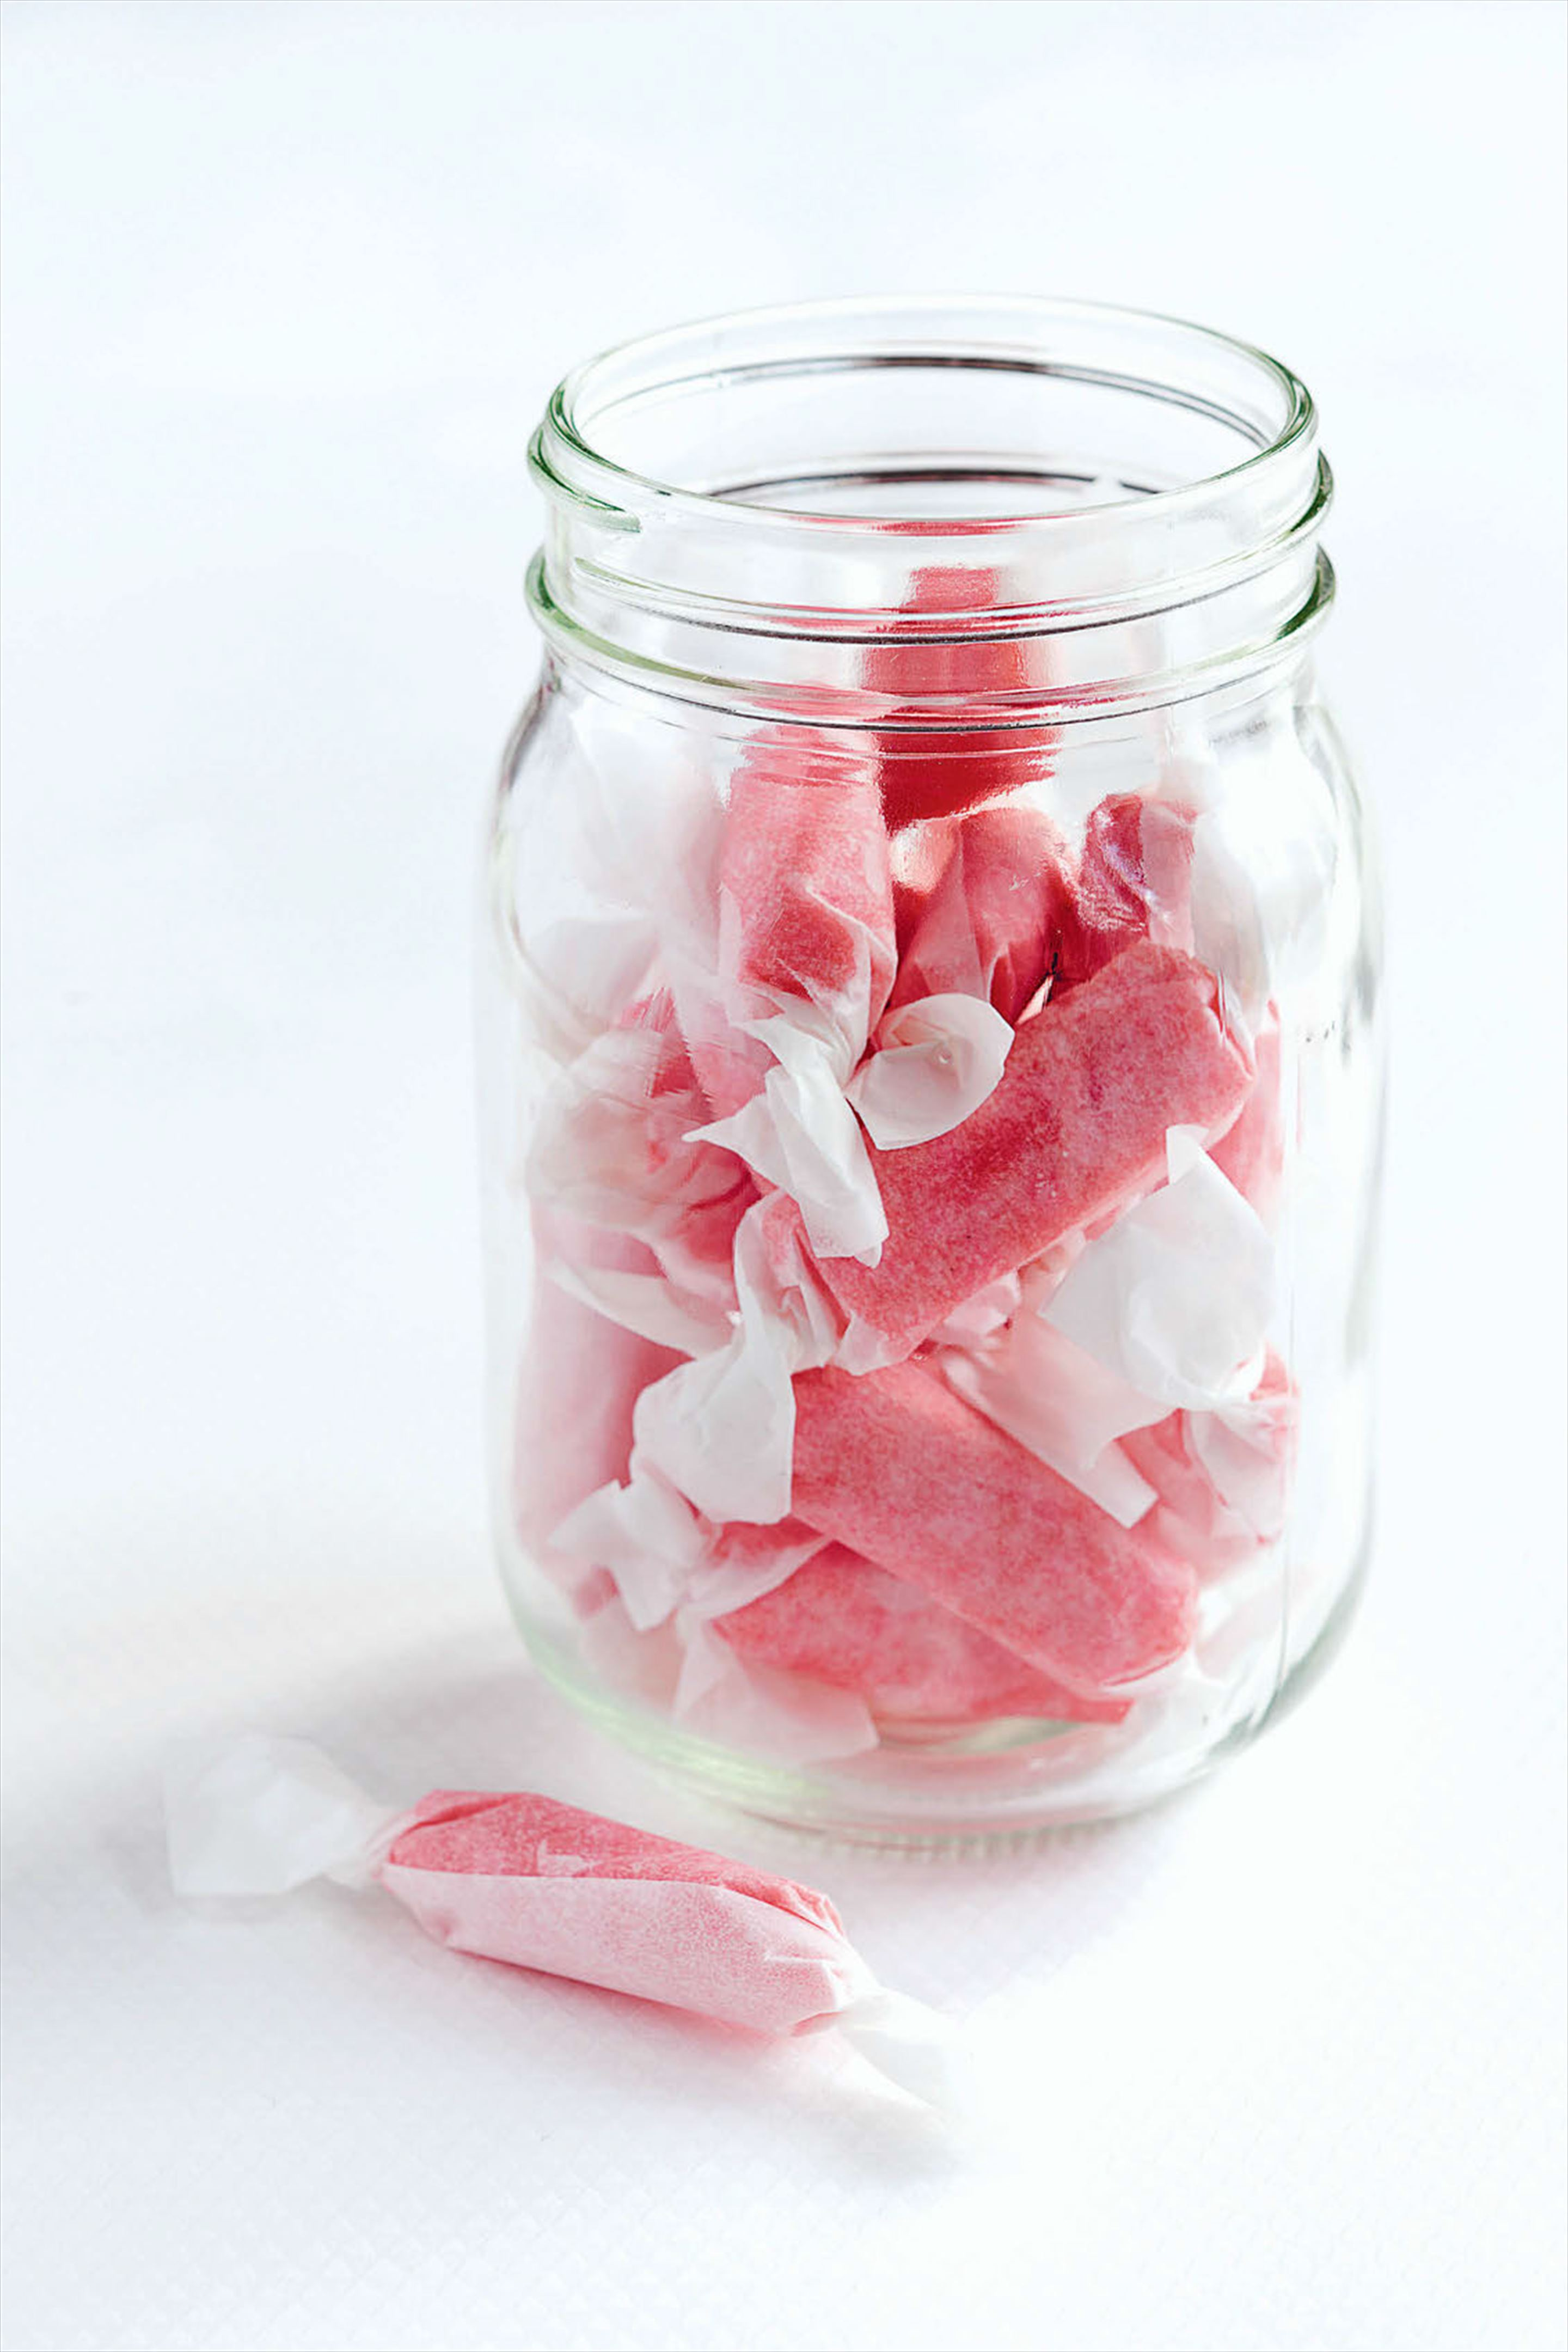 Taffy chewy fruit candies